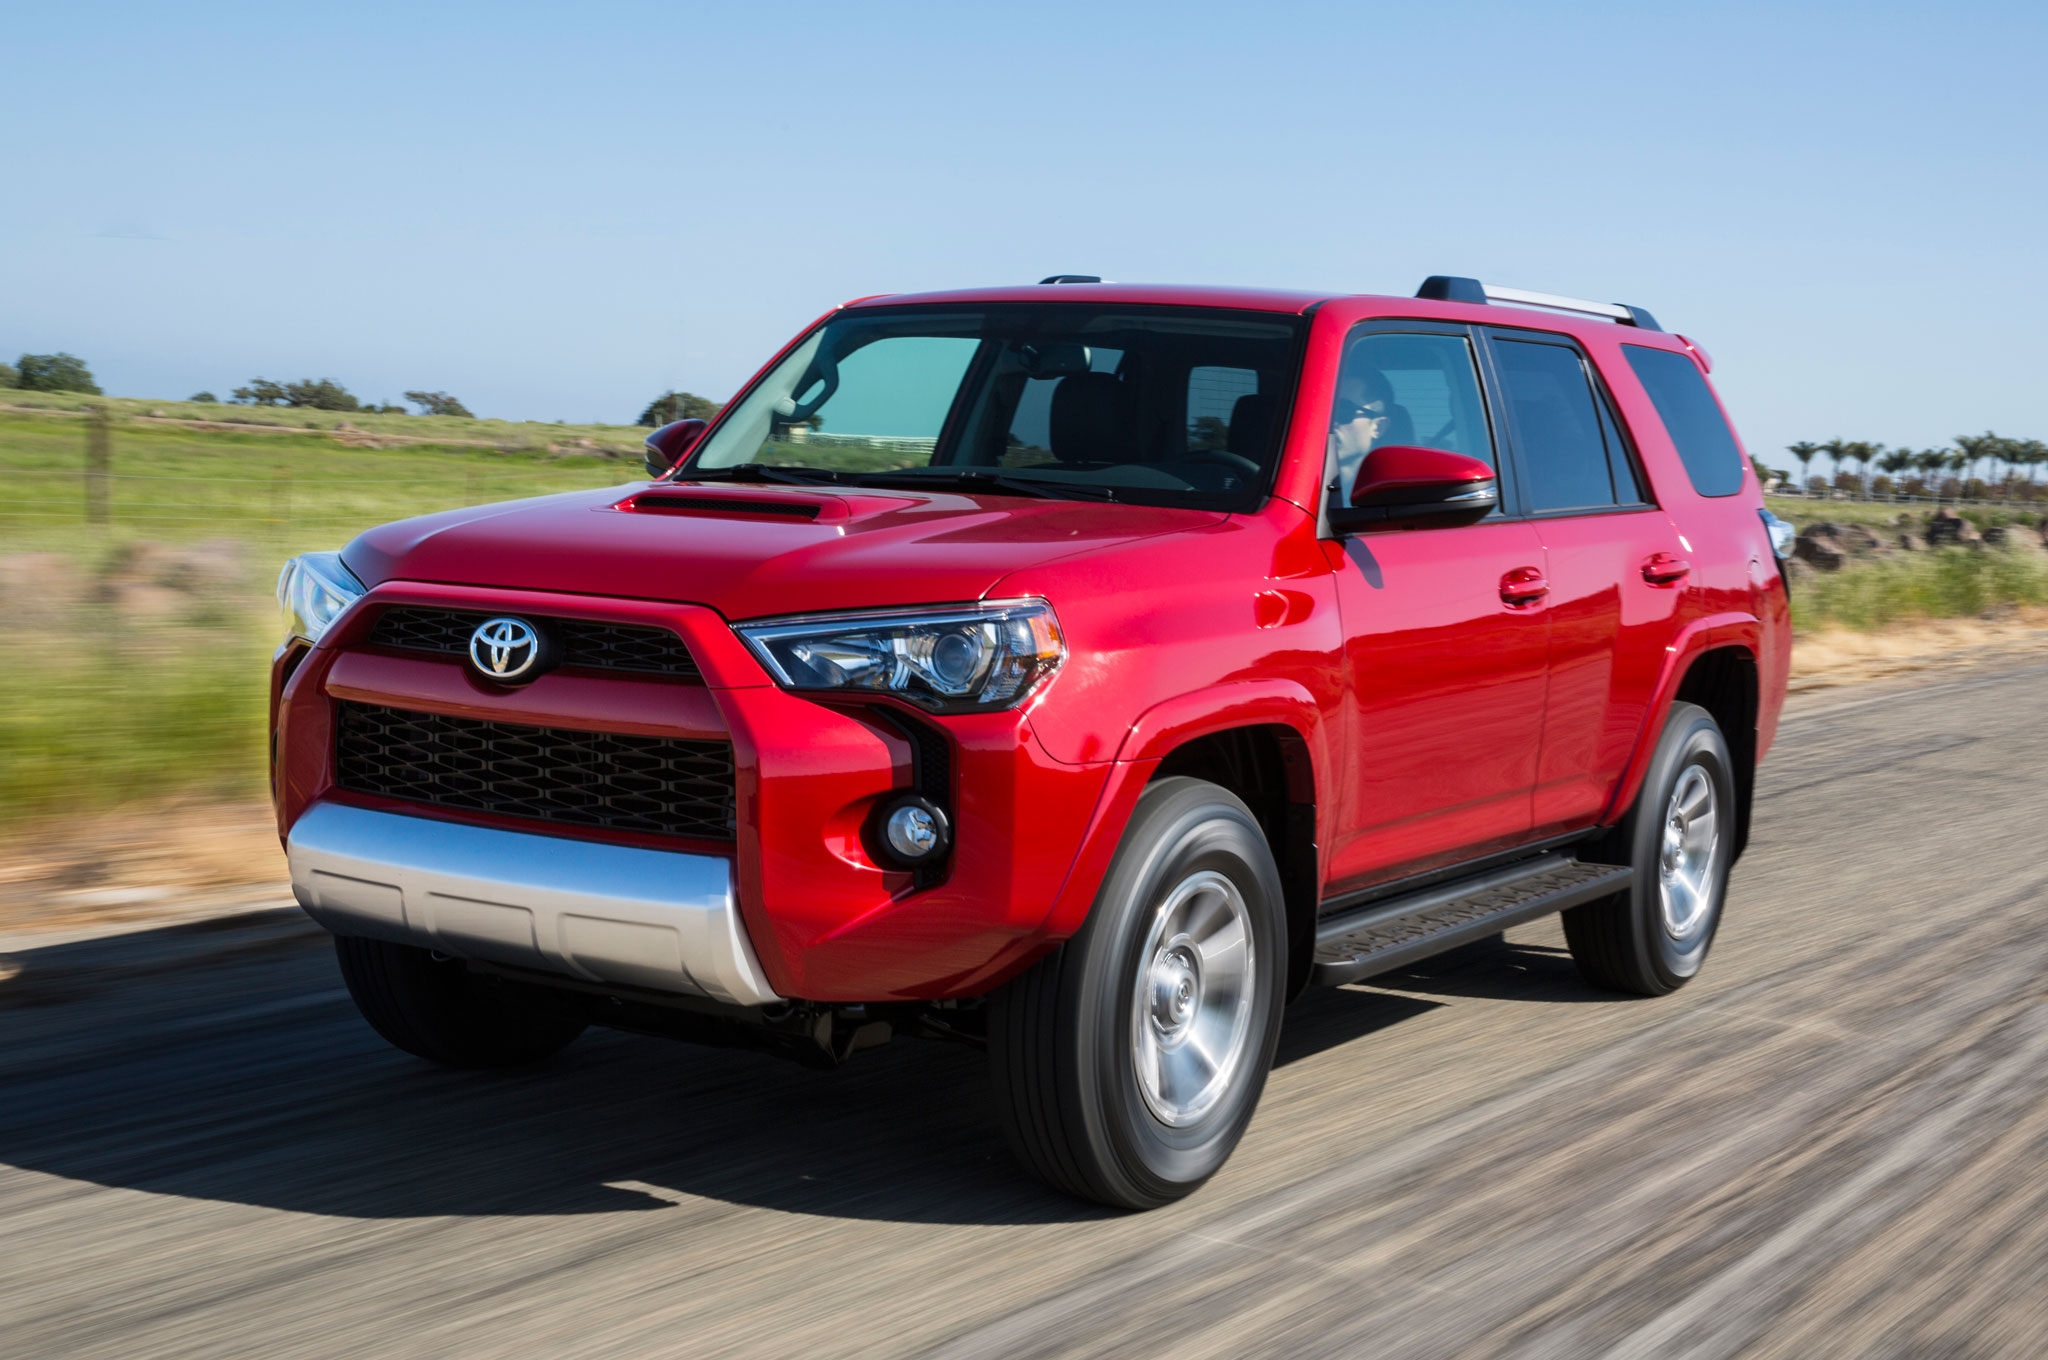 2014 Toyota 4Runner Discounted to Celebrate 30th Anniversary